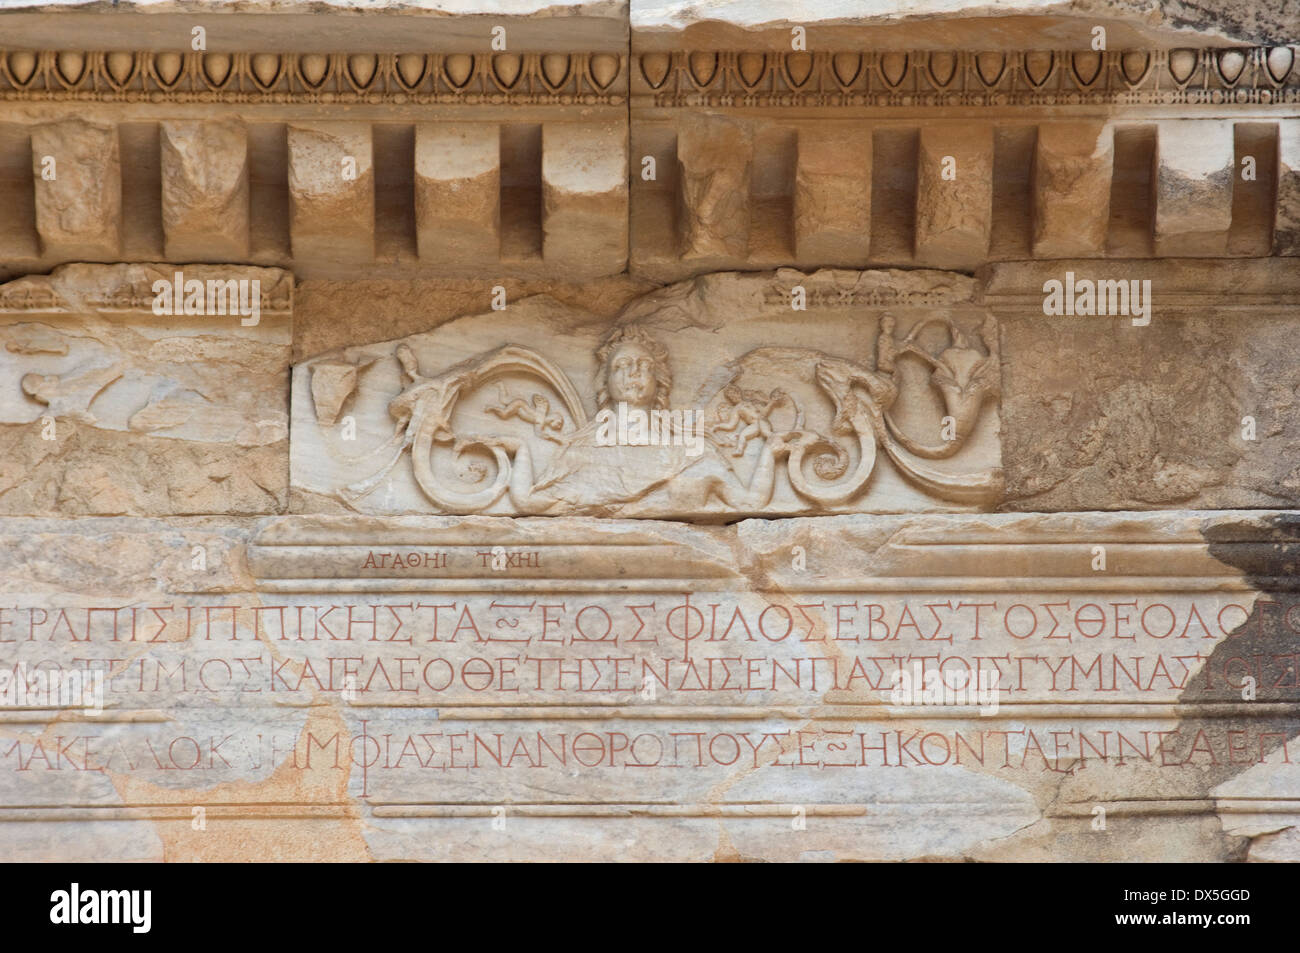 Medusa bas-relief and ancient Greek inscriptions on the gate to the agora at Ephesus, Turkey. Digital photograph - Stock Image